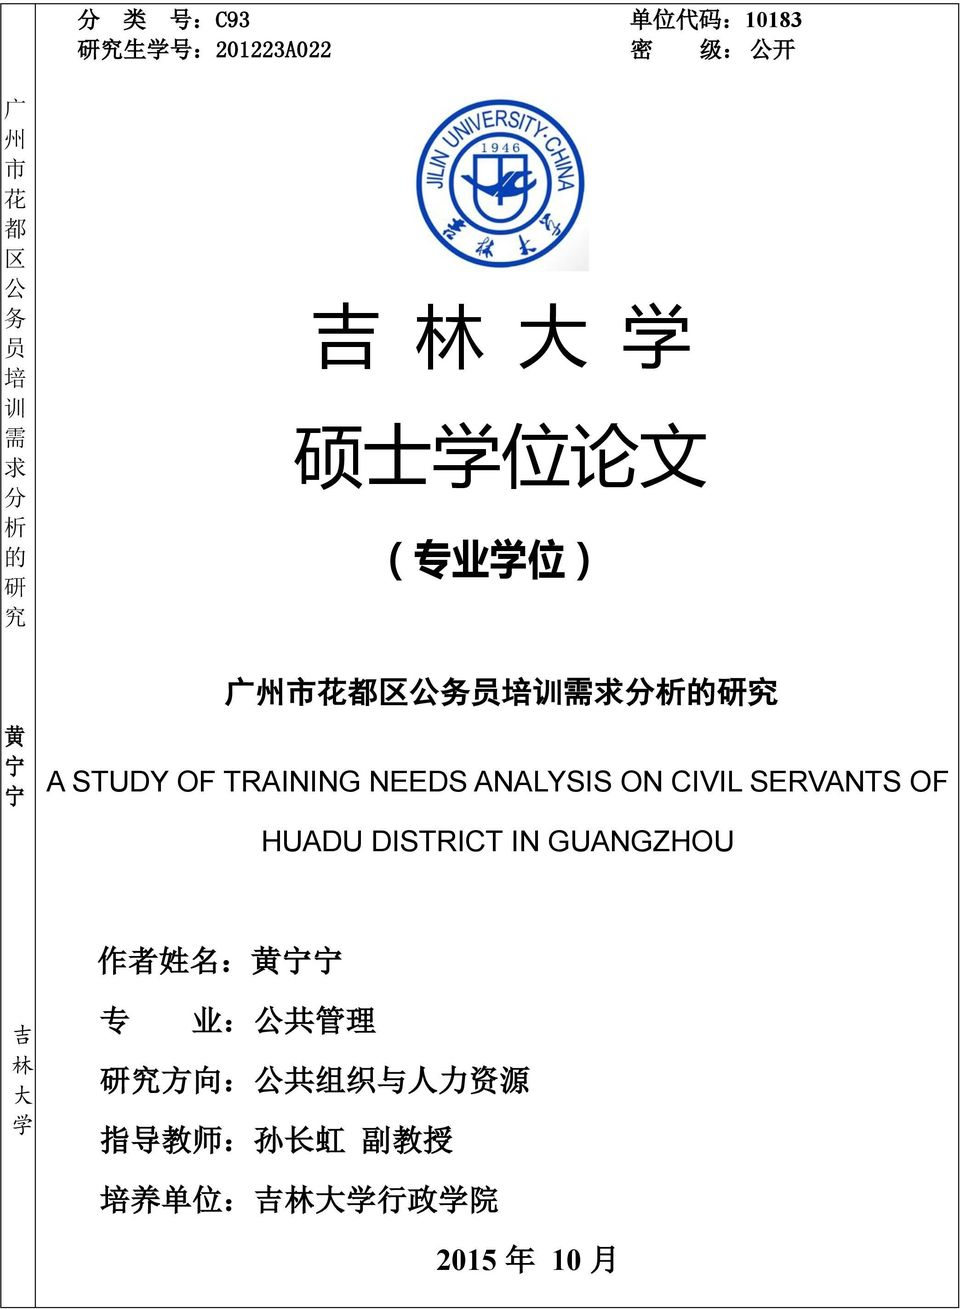 TRAINING NEEDS ANALYSIS ON CIVIL SERVANTS OF HUADU DISTRICT IN GUANGZHOU 作 者 姓 名 : 黄 宁 宁 吉 林 大